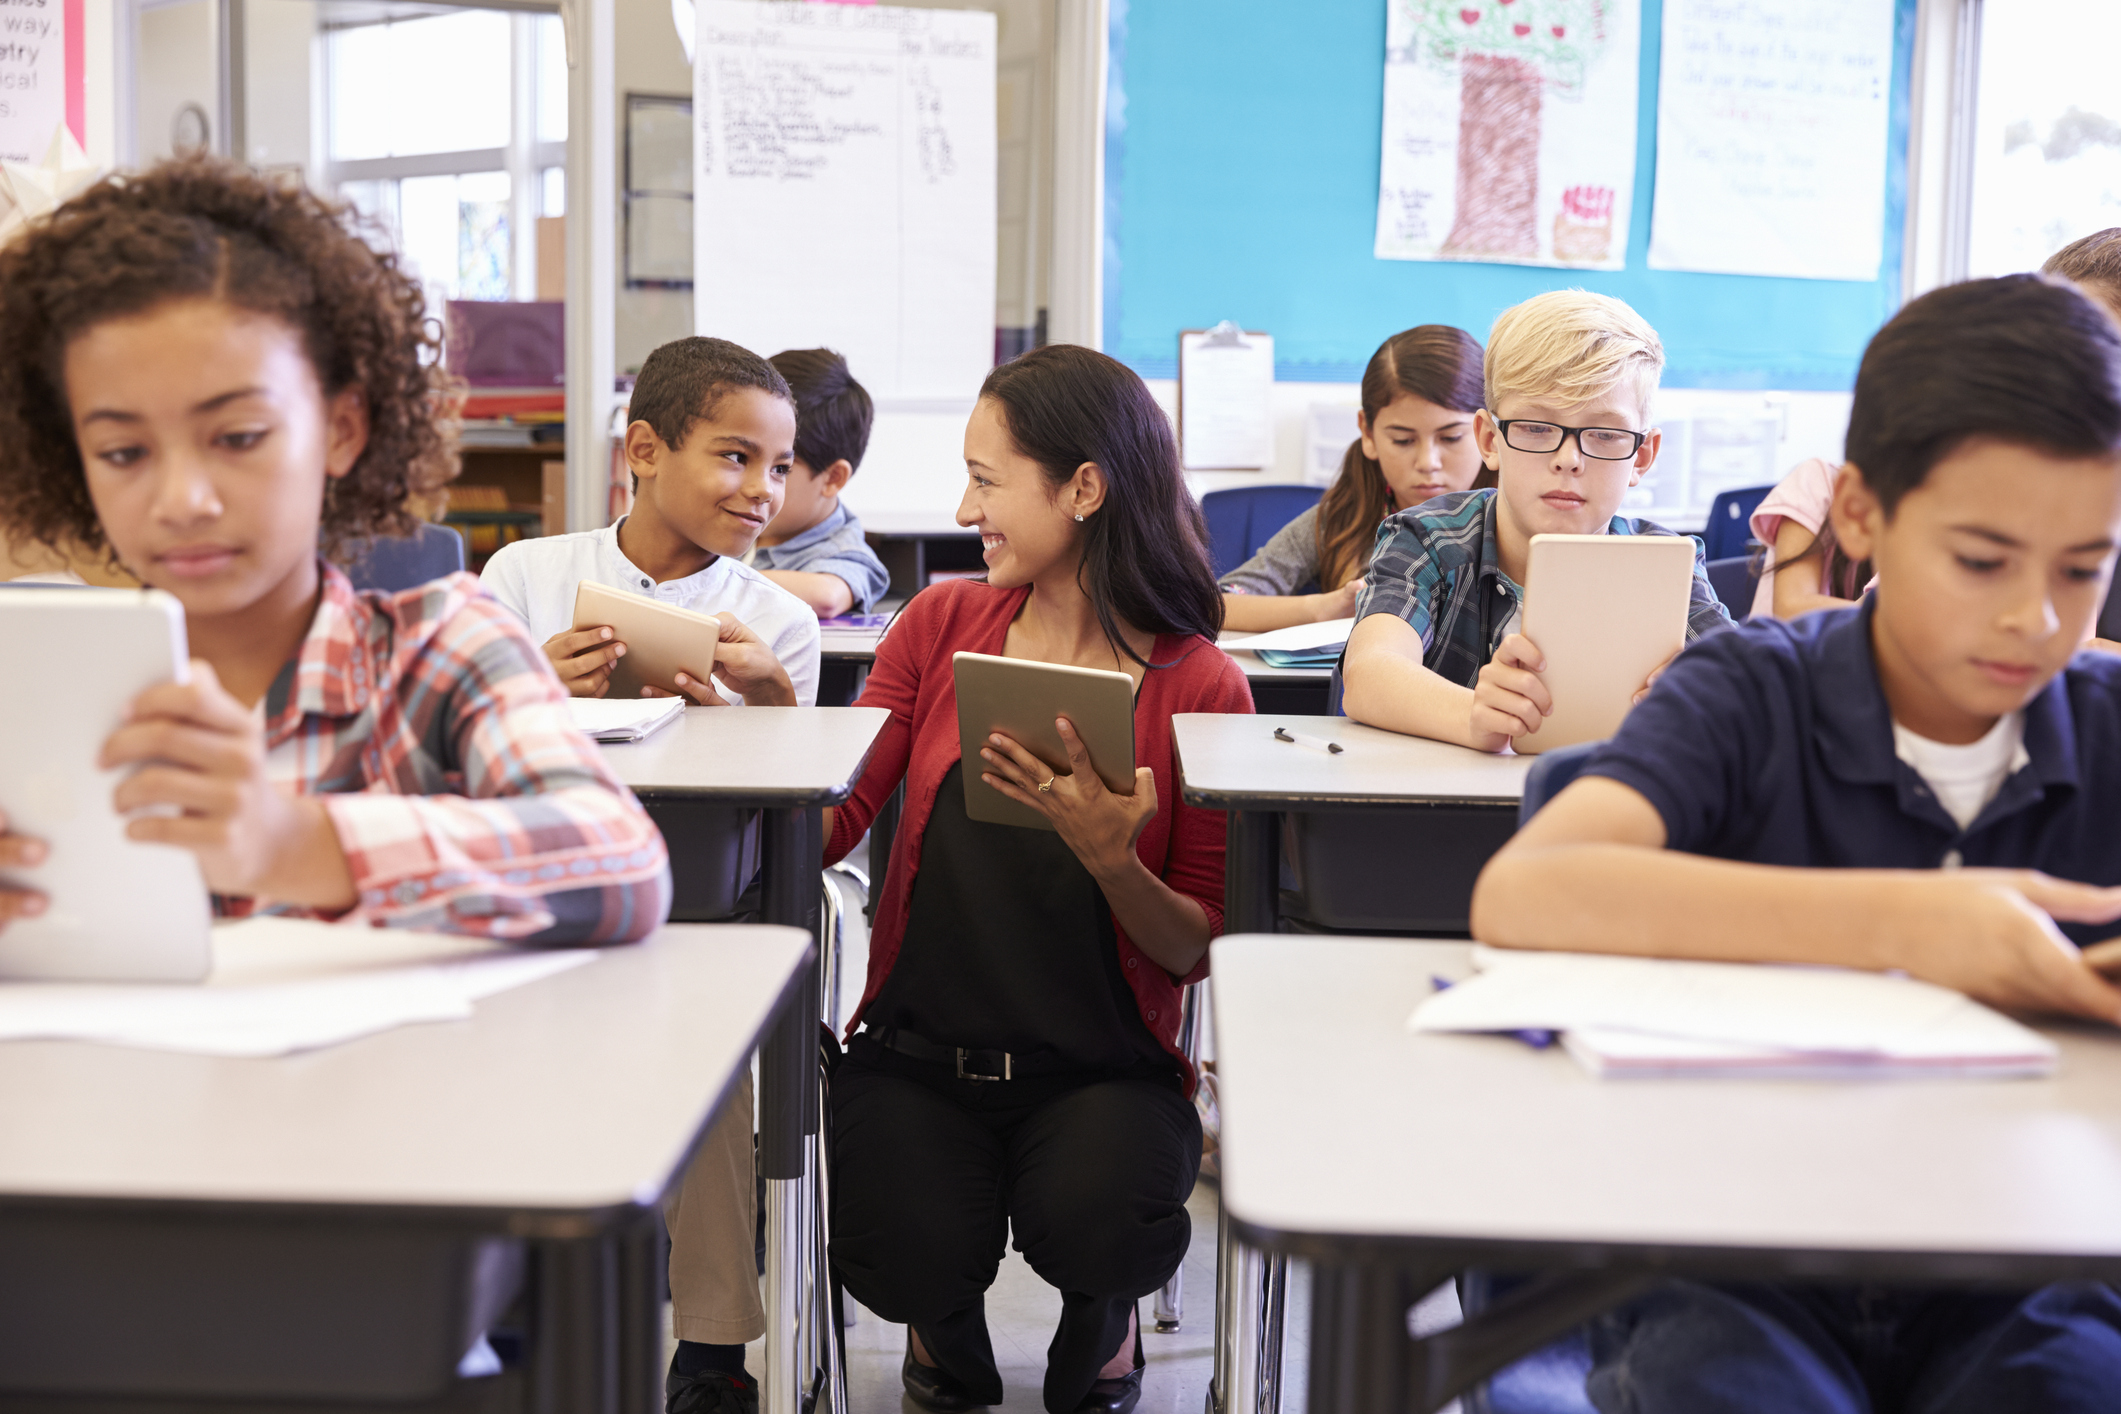 Educational specialists help teachers in a variety of ways